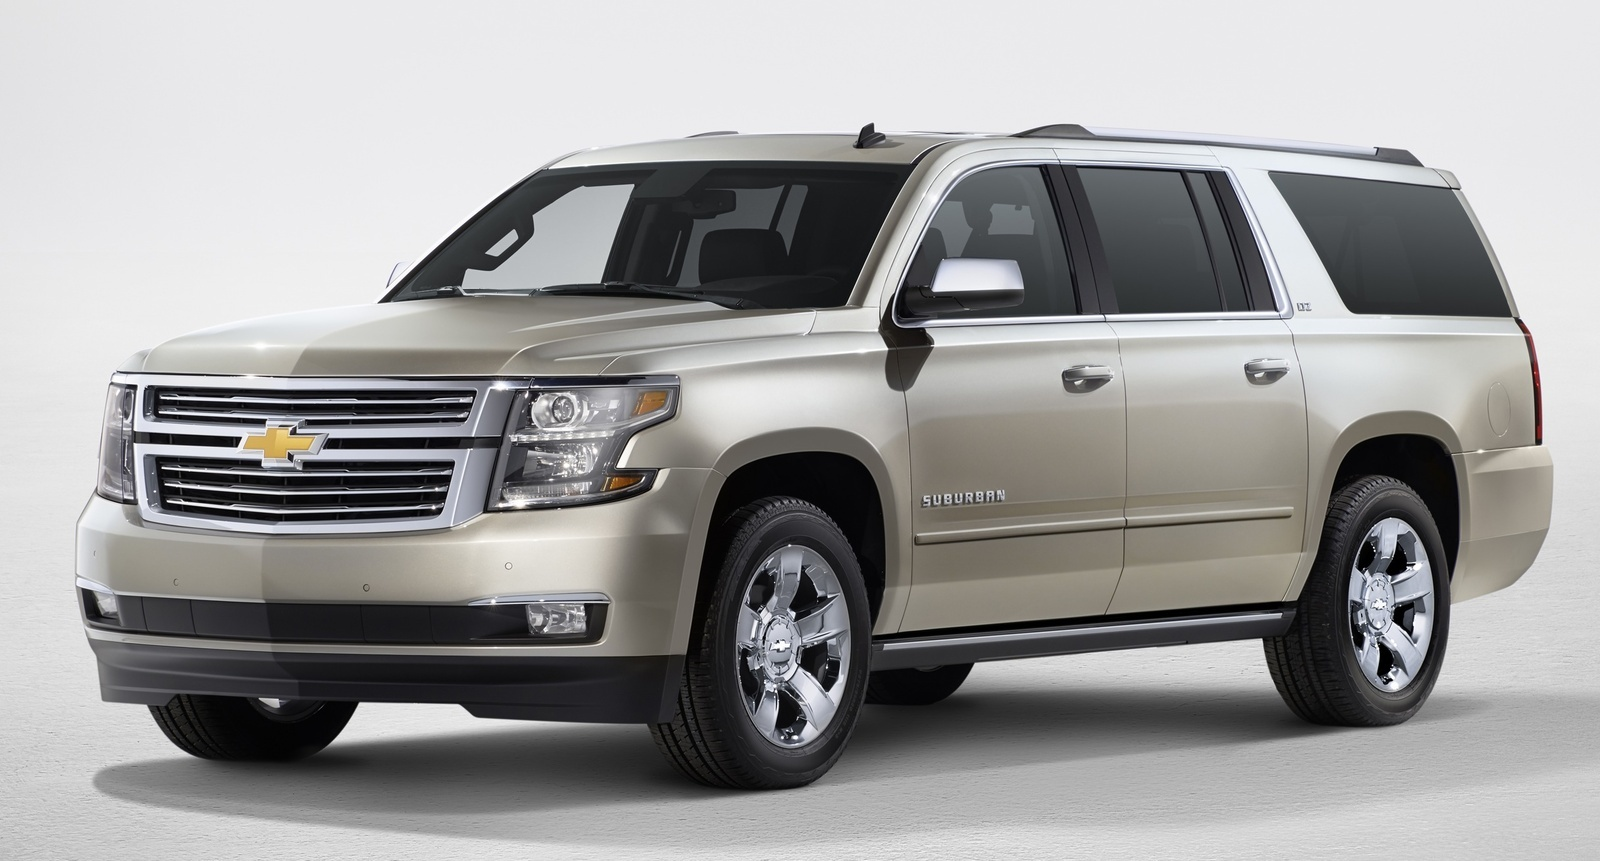 2016 chevrolet suburban overview cargurus. Black Bedroom Furniture Sets. Home Design Ideas